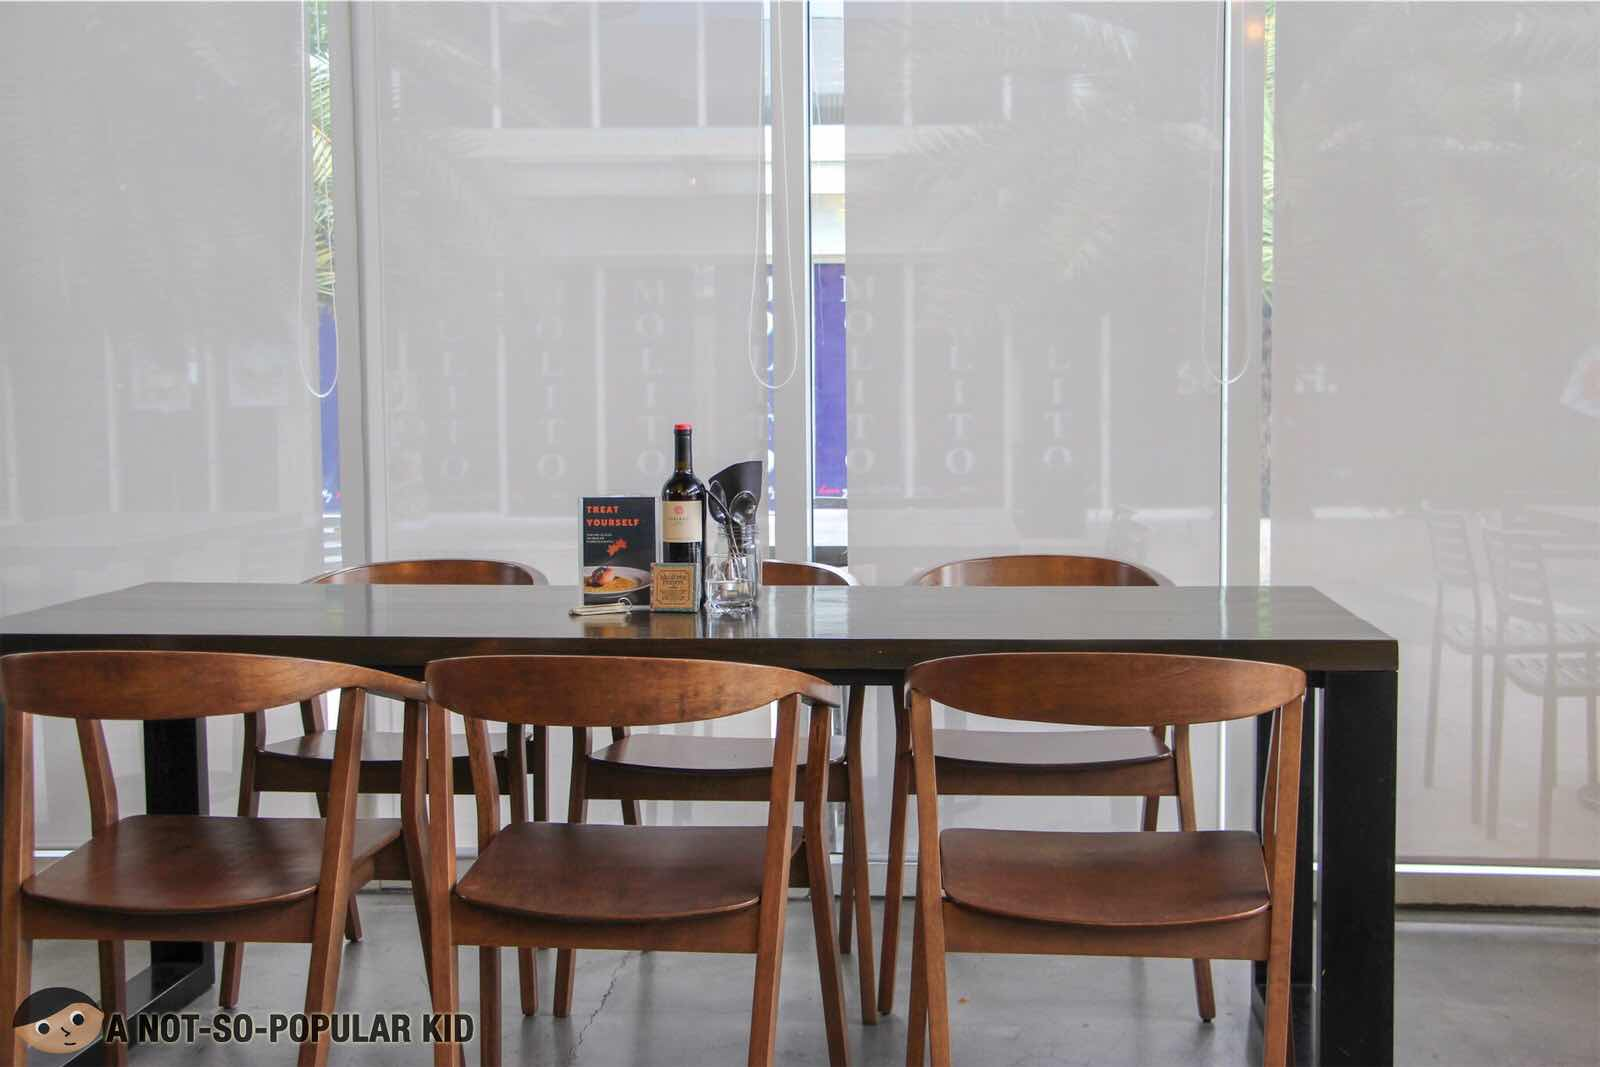 Melt Grilled Cheesery in Alabang - Interior